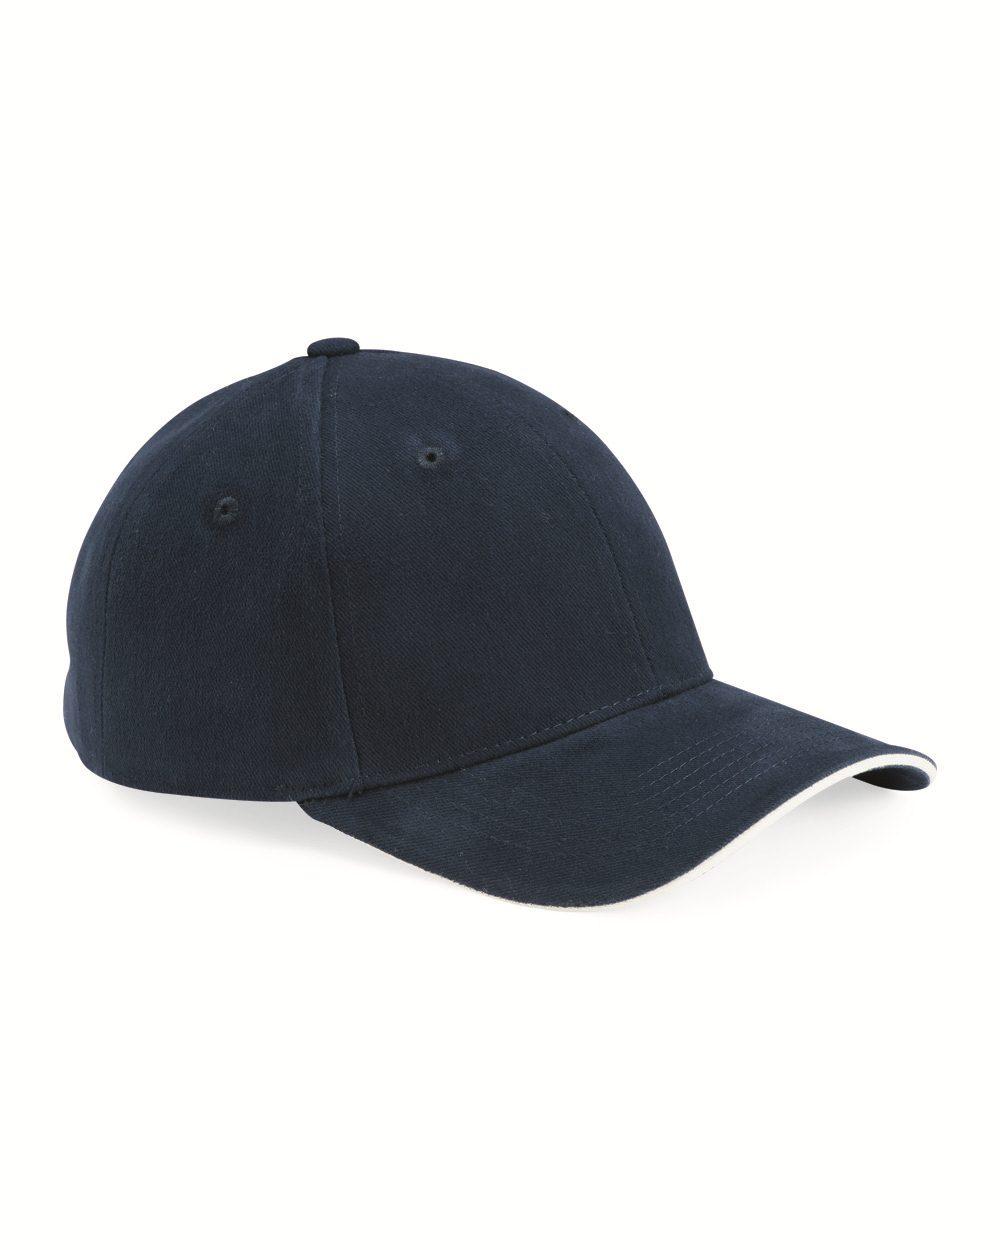 Sportsman Cap 2150 Heavy Brushed Twill Sandwich Cap